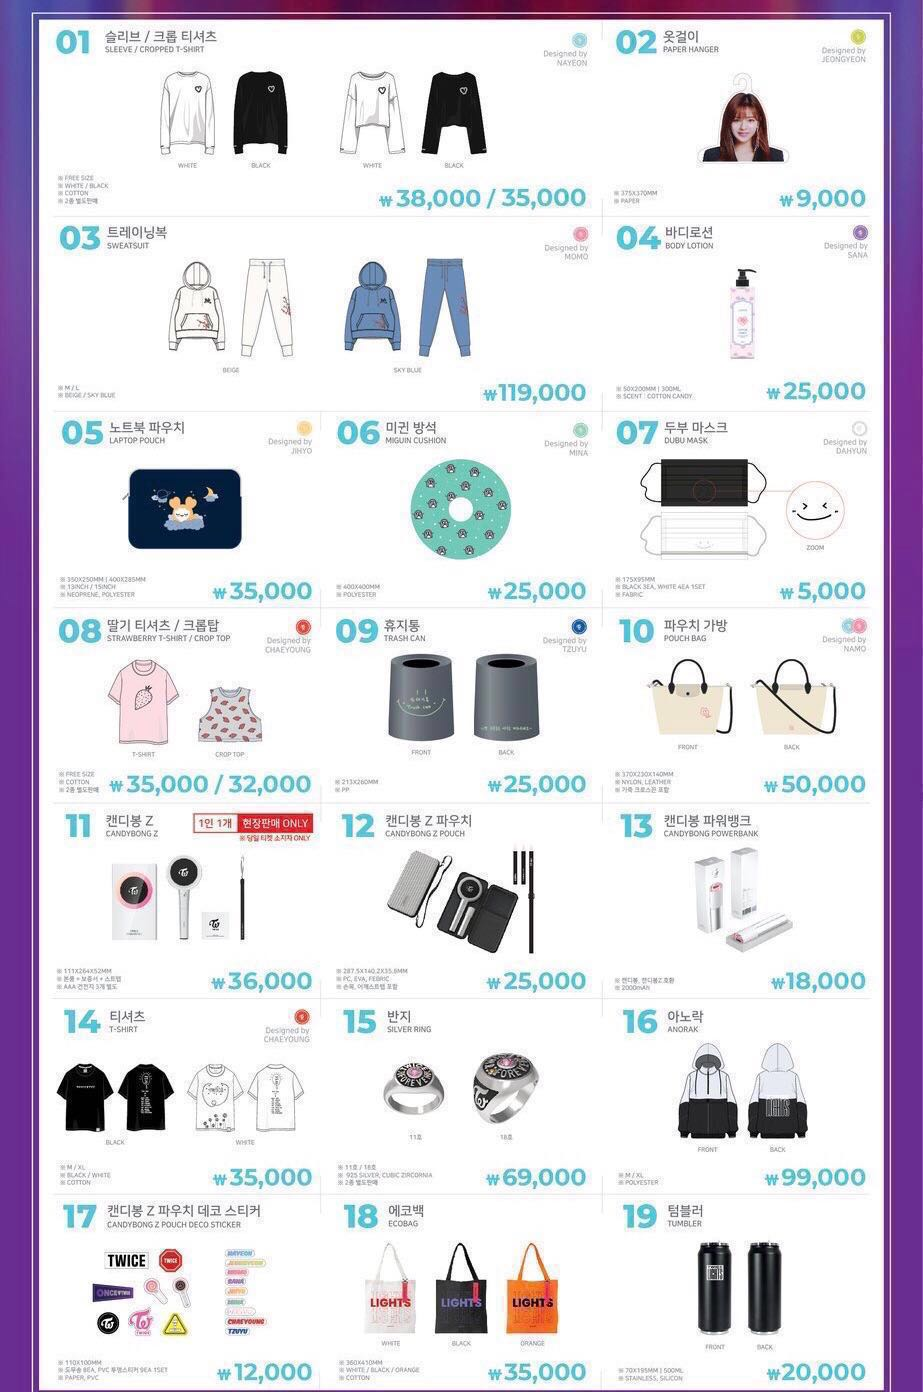 SG PO — Twice World Tour 2019 Twicelights Official